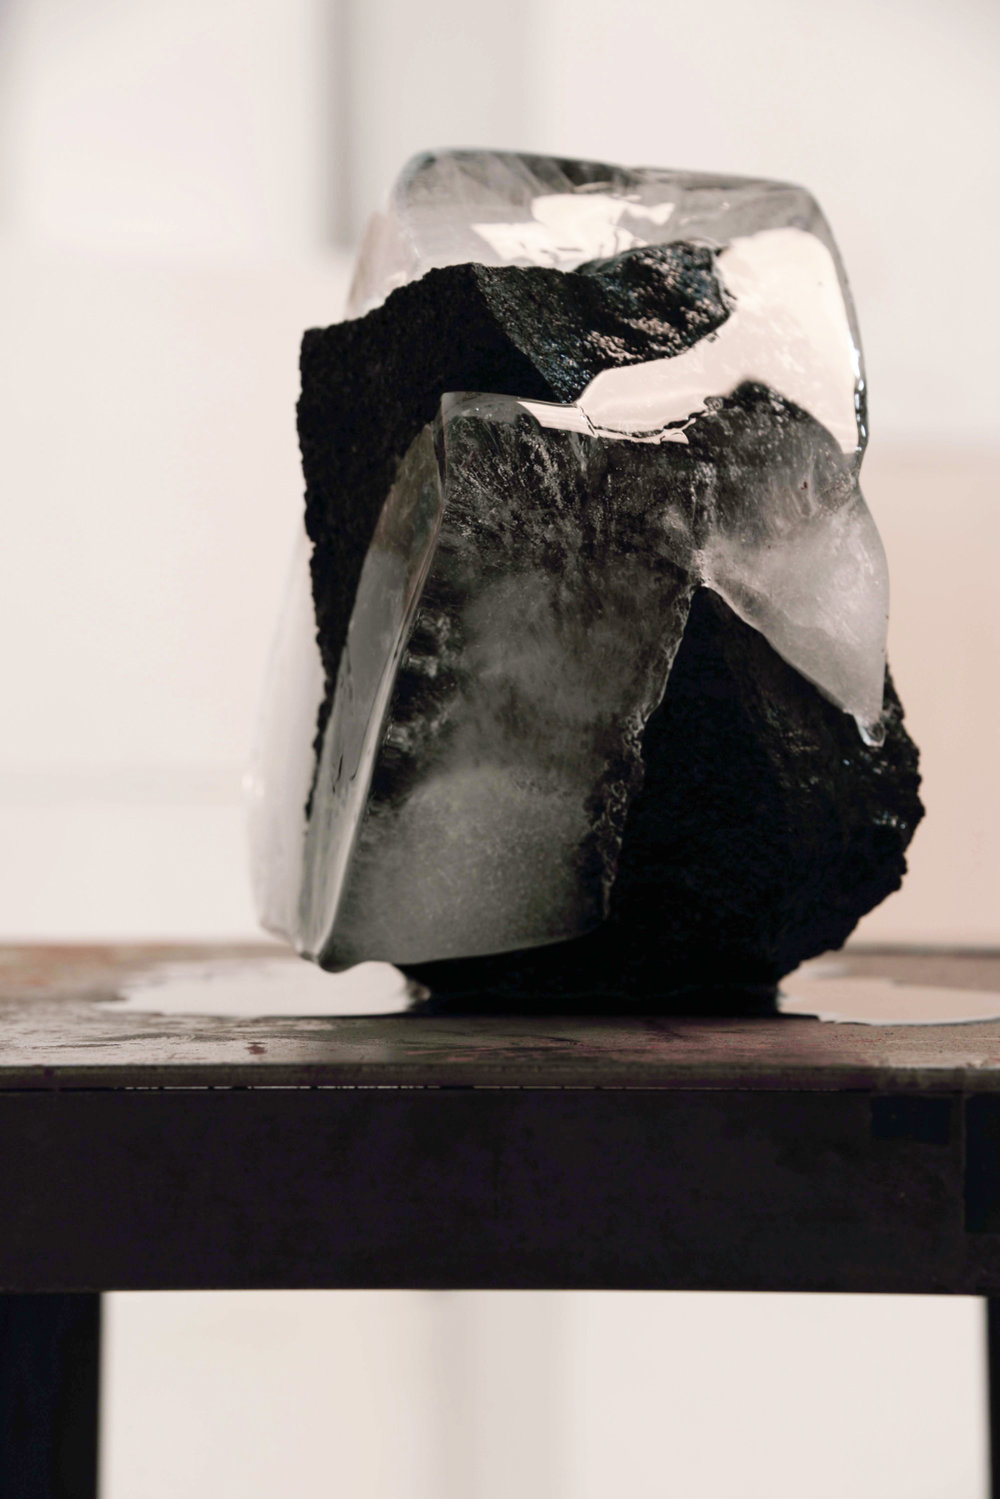 'Intermediate.', (volcanic rock and ice).